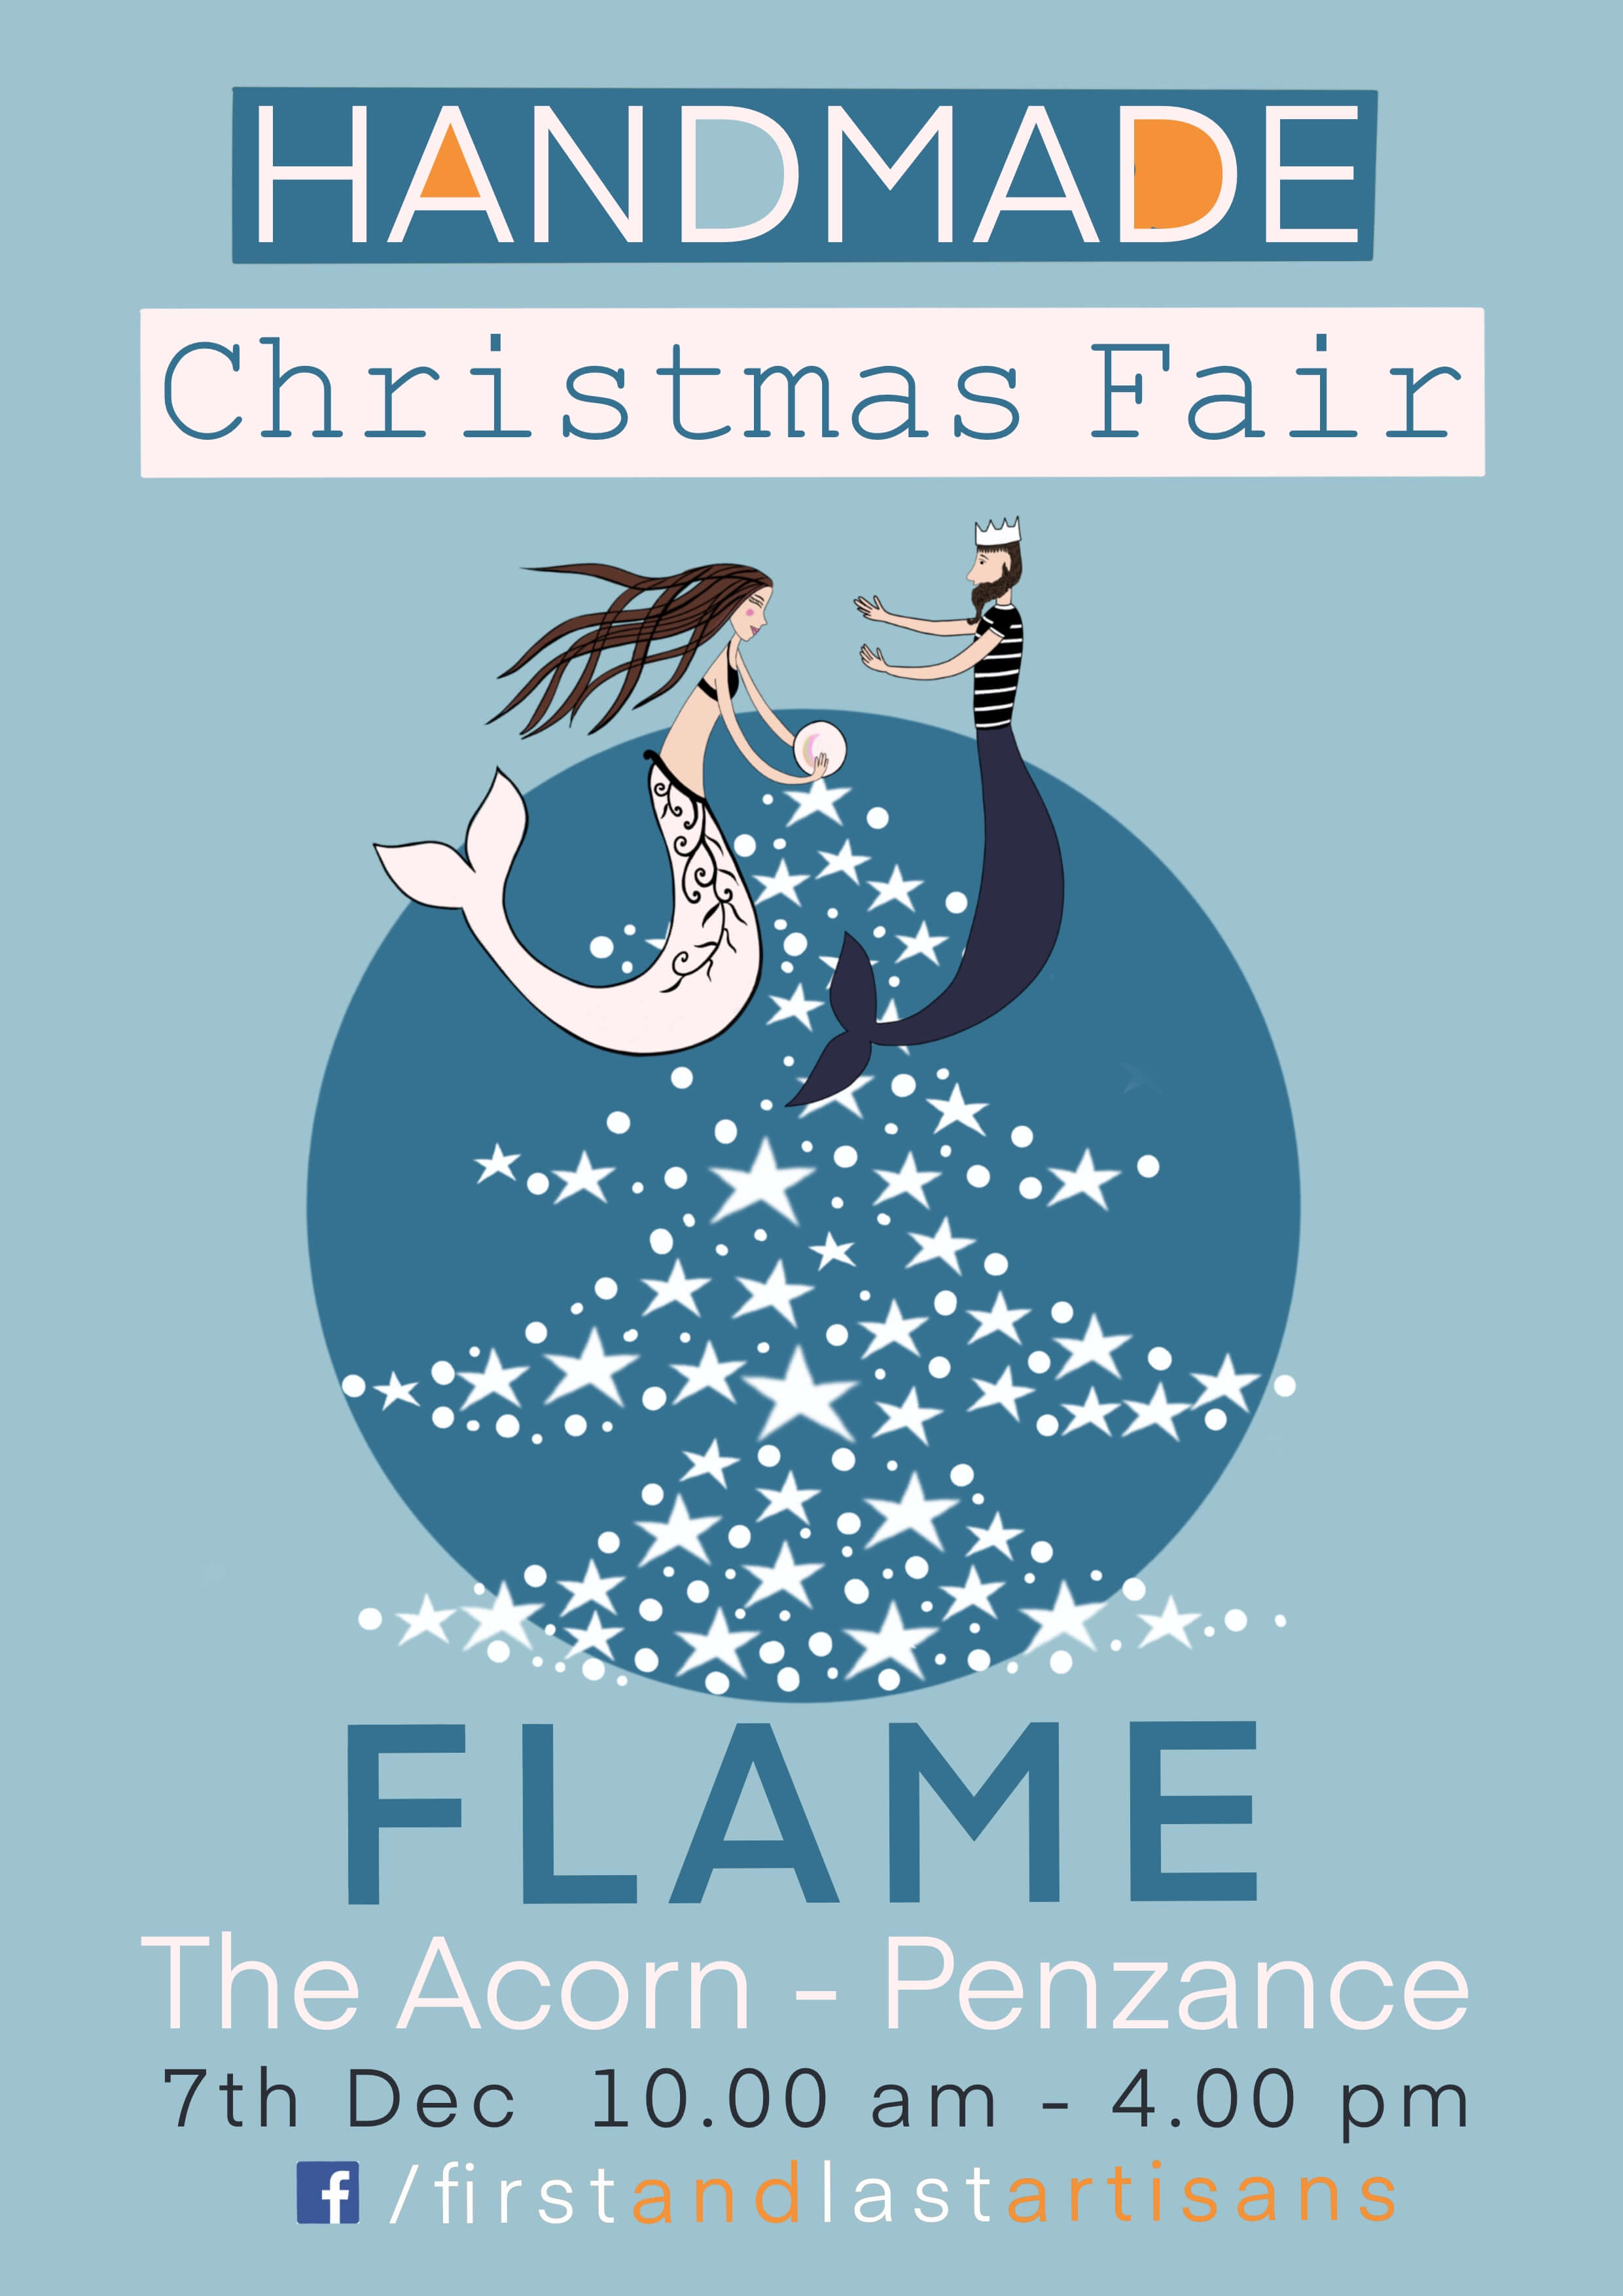 FLAME Handmade Christmas Fair